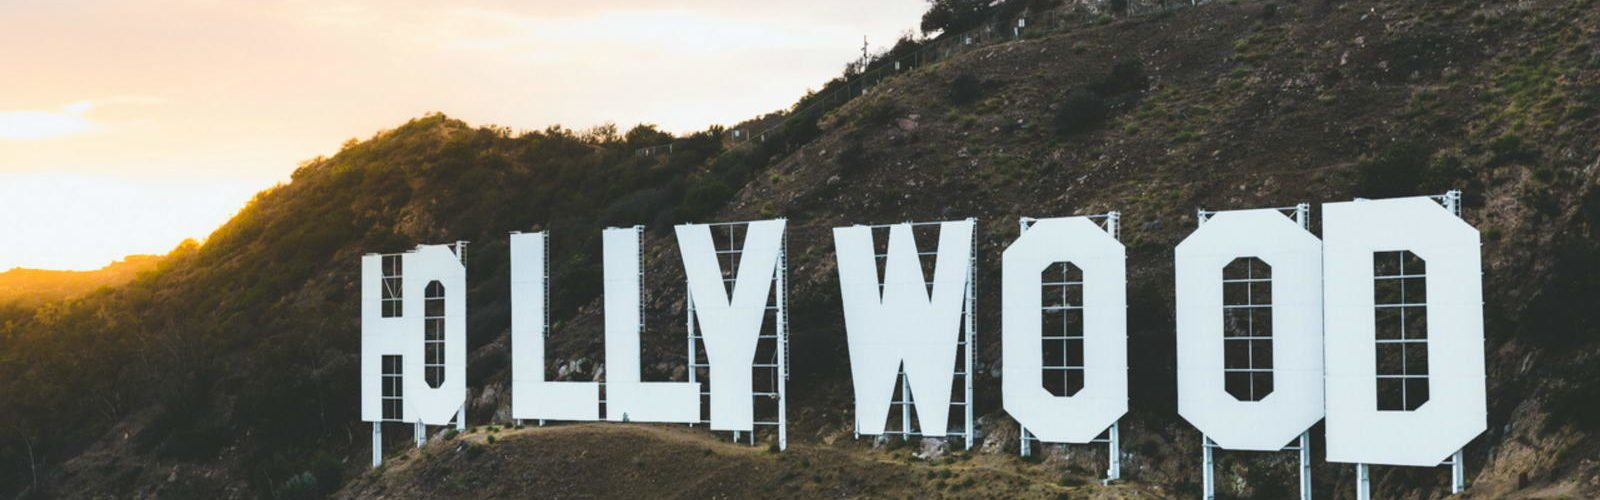 histoire-panneau-hollywood-los-angeles-featured